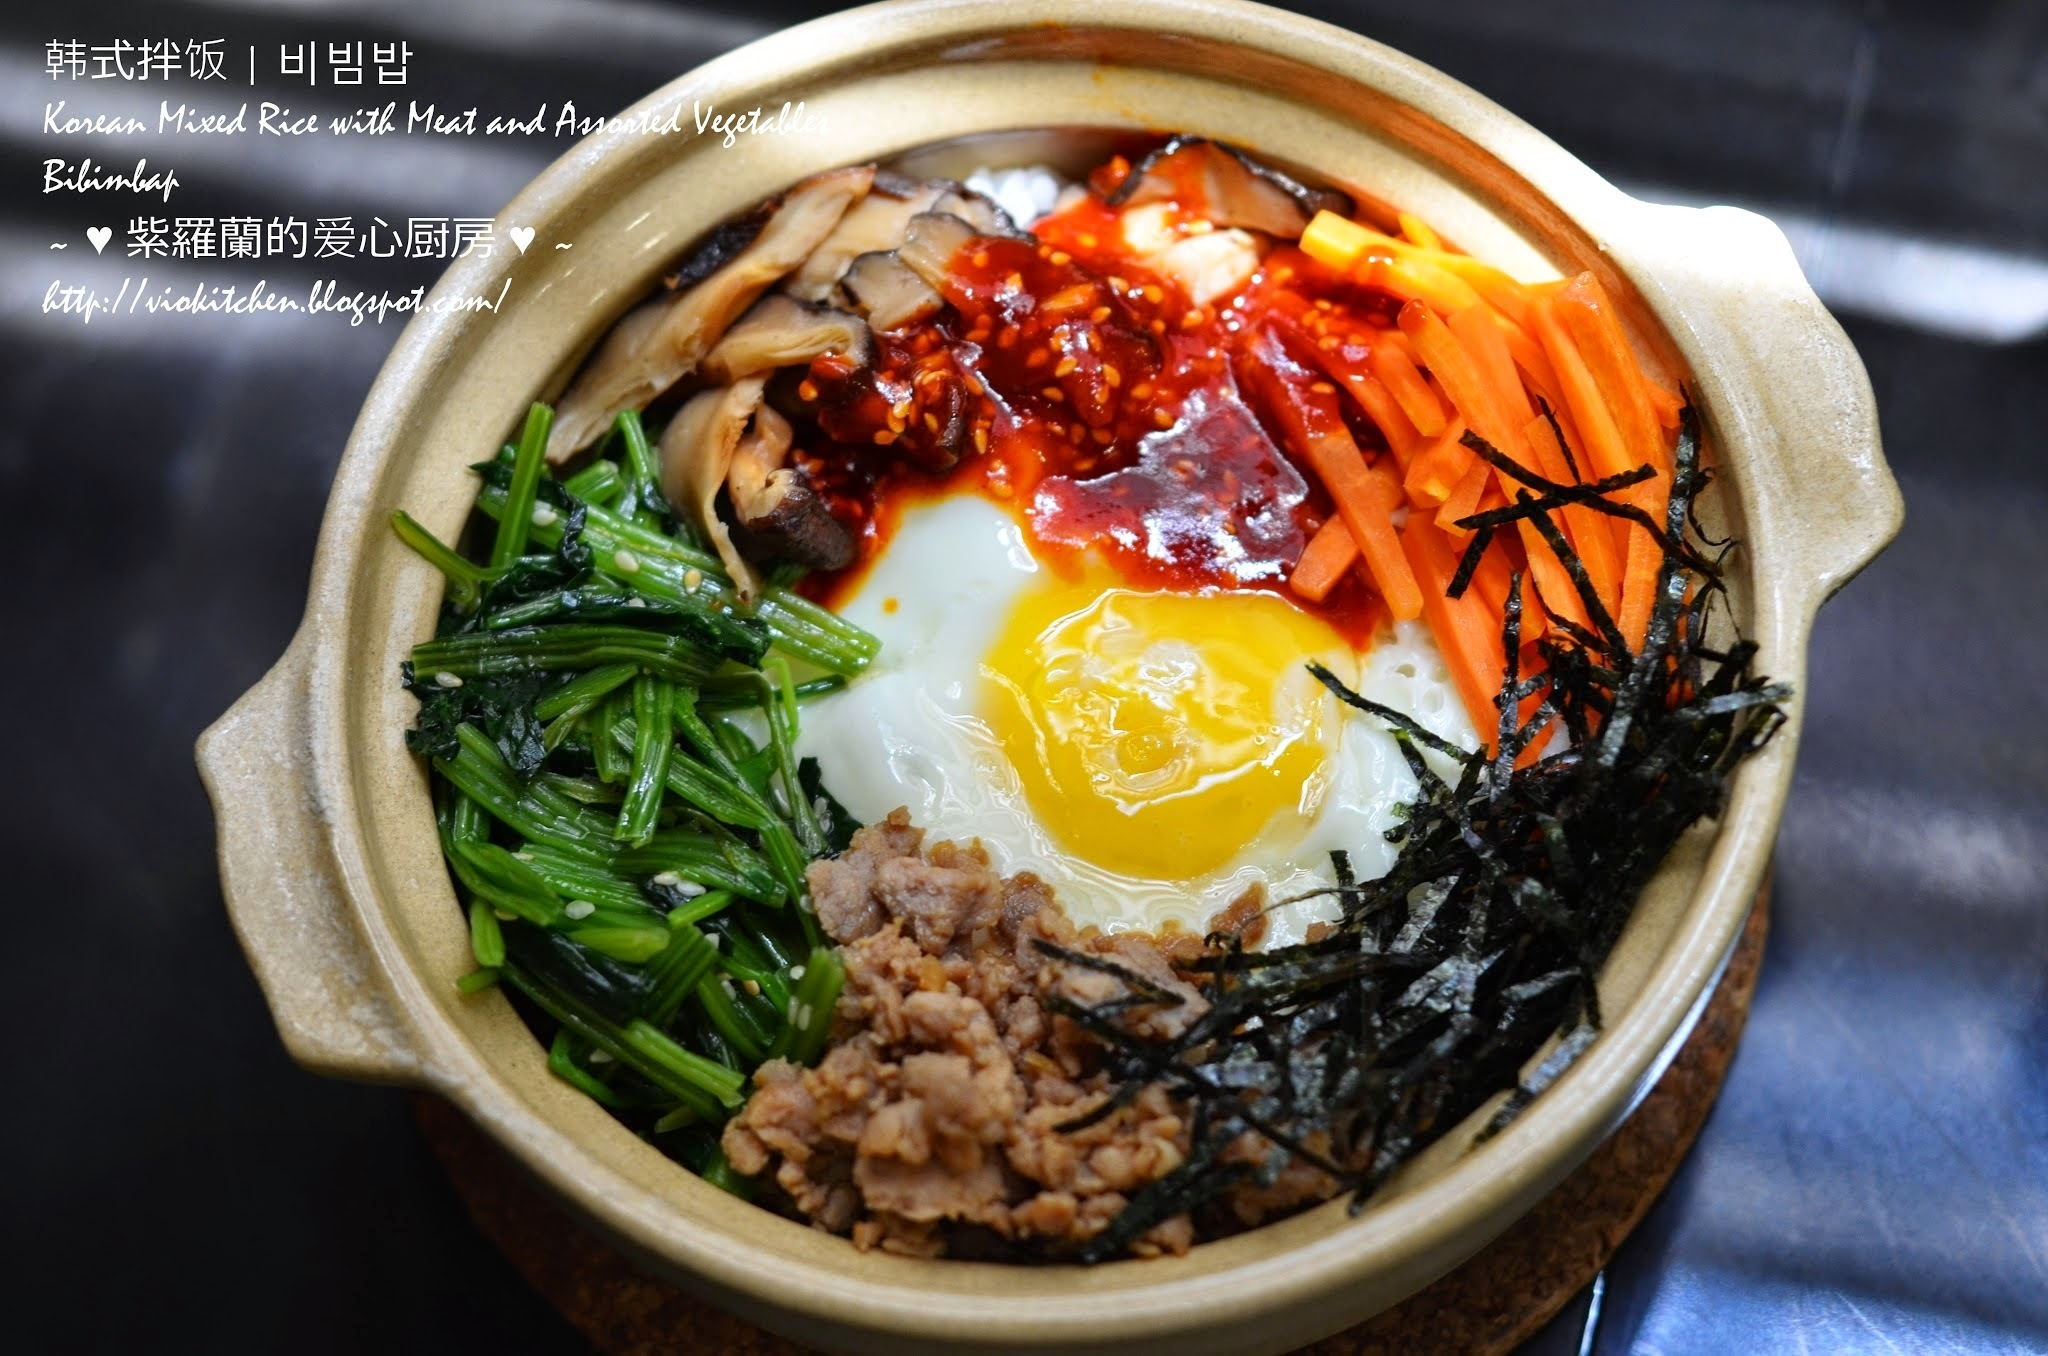 韩式拌饭 | 비빔밥 Korean Mixed Rice with Meat and Assorted Vegetables | Bibimbap